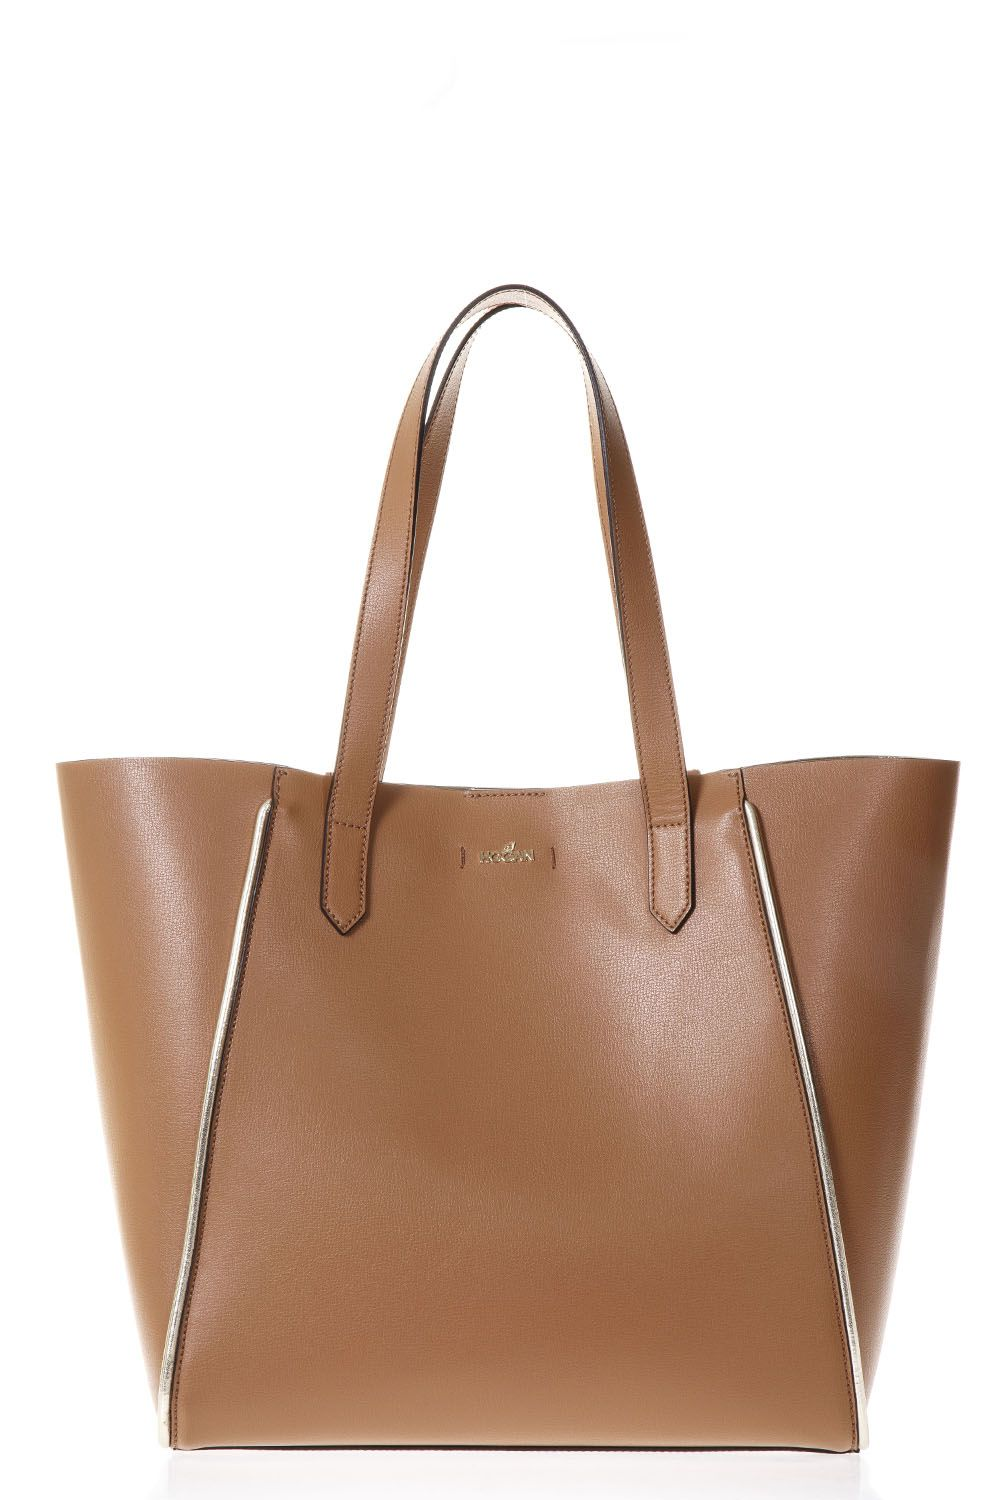 Hogan Tote Bag On Sale, Leather Brown, Leather, 2017, one size